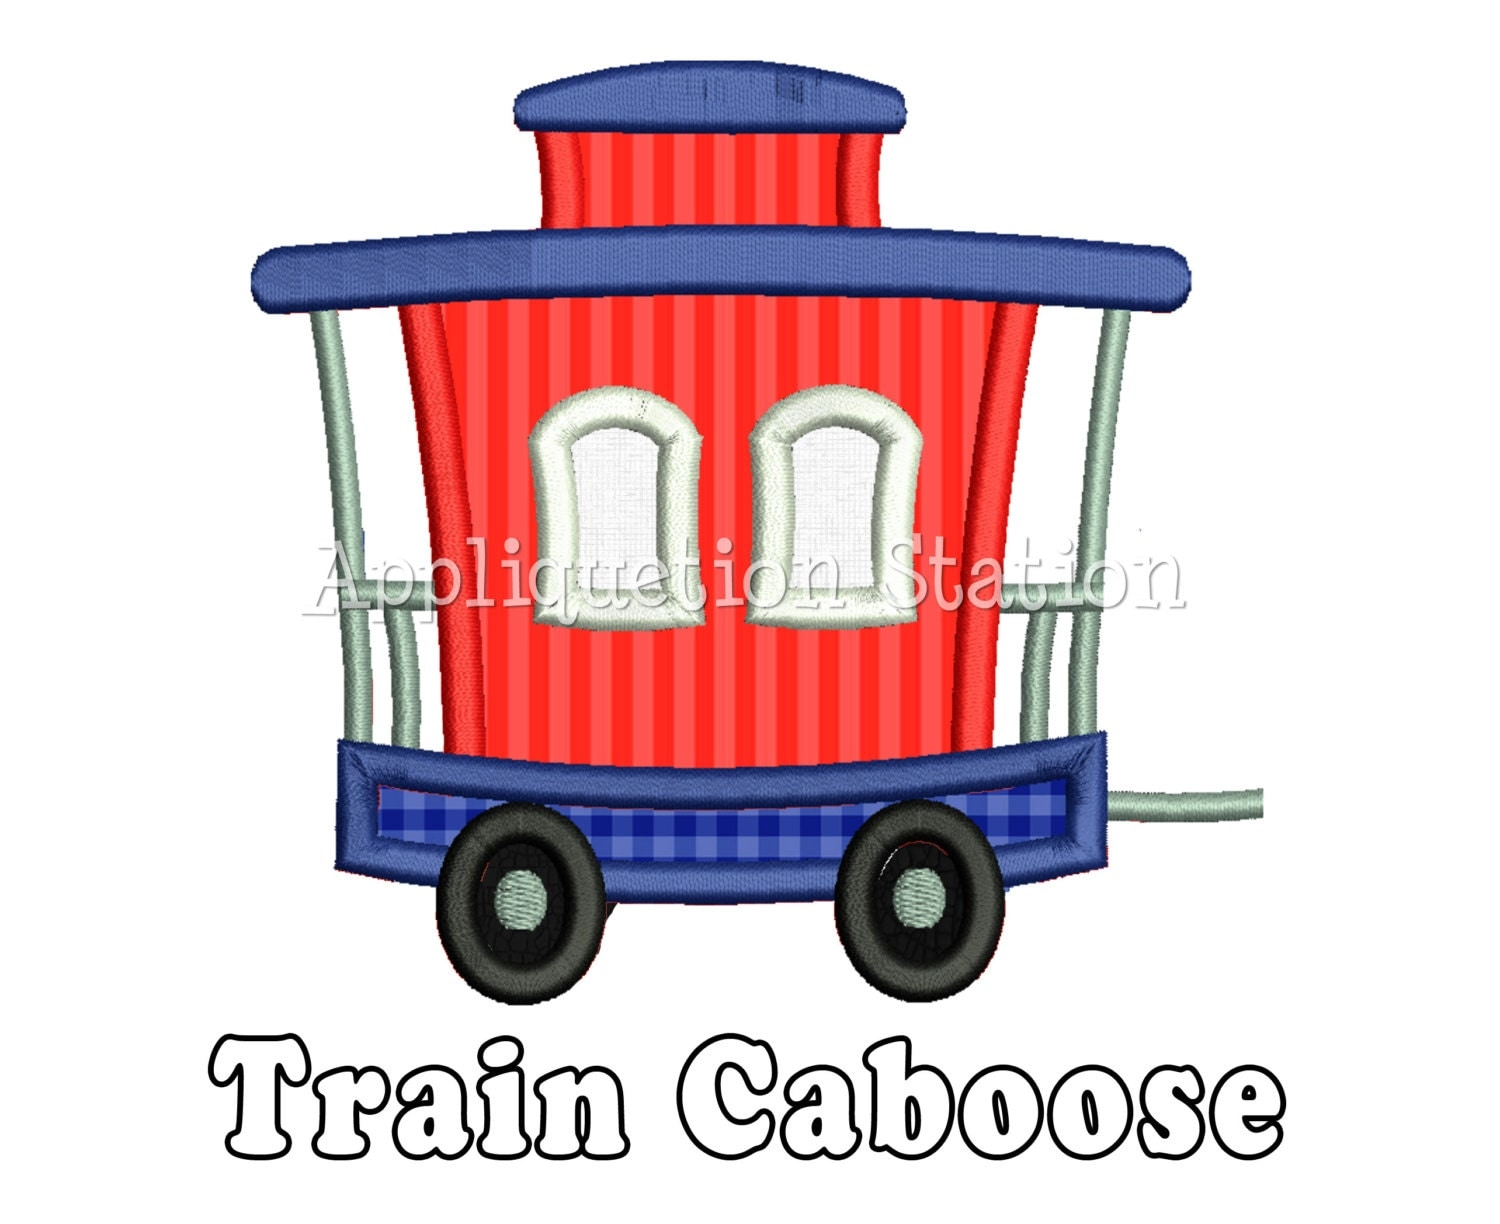 Thomas The Train Tracks Clip Art Train caboose applique machine